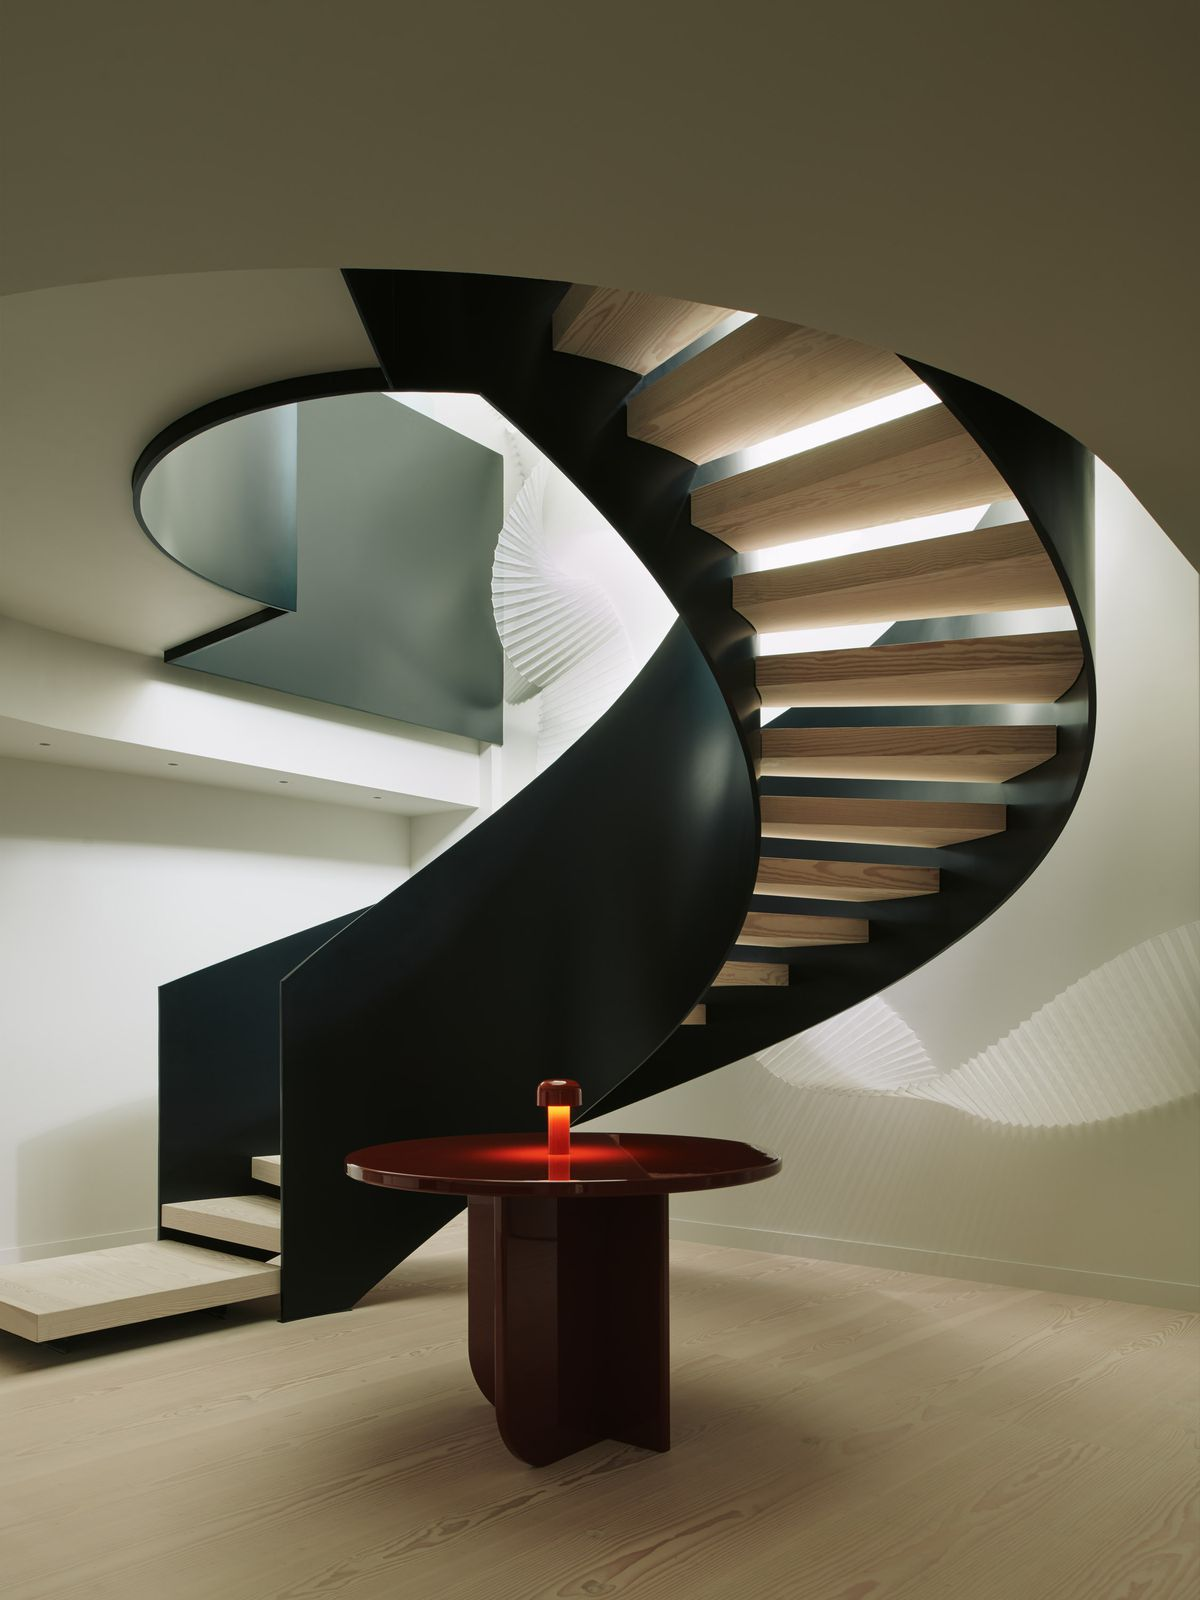 A spiral black staircase and a red round table.